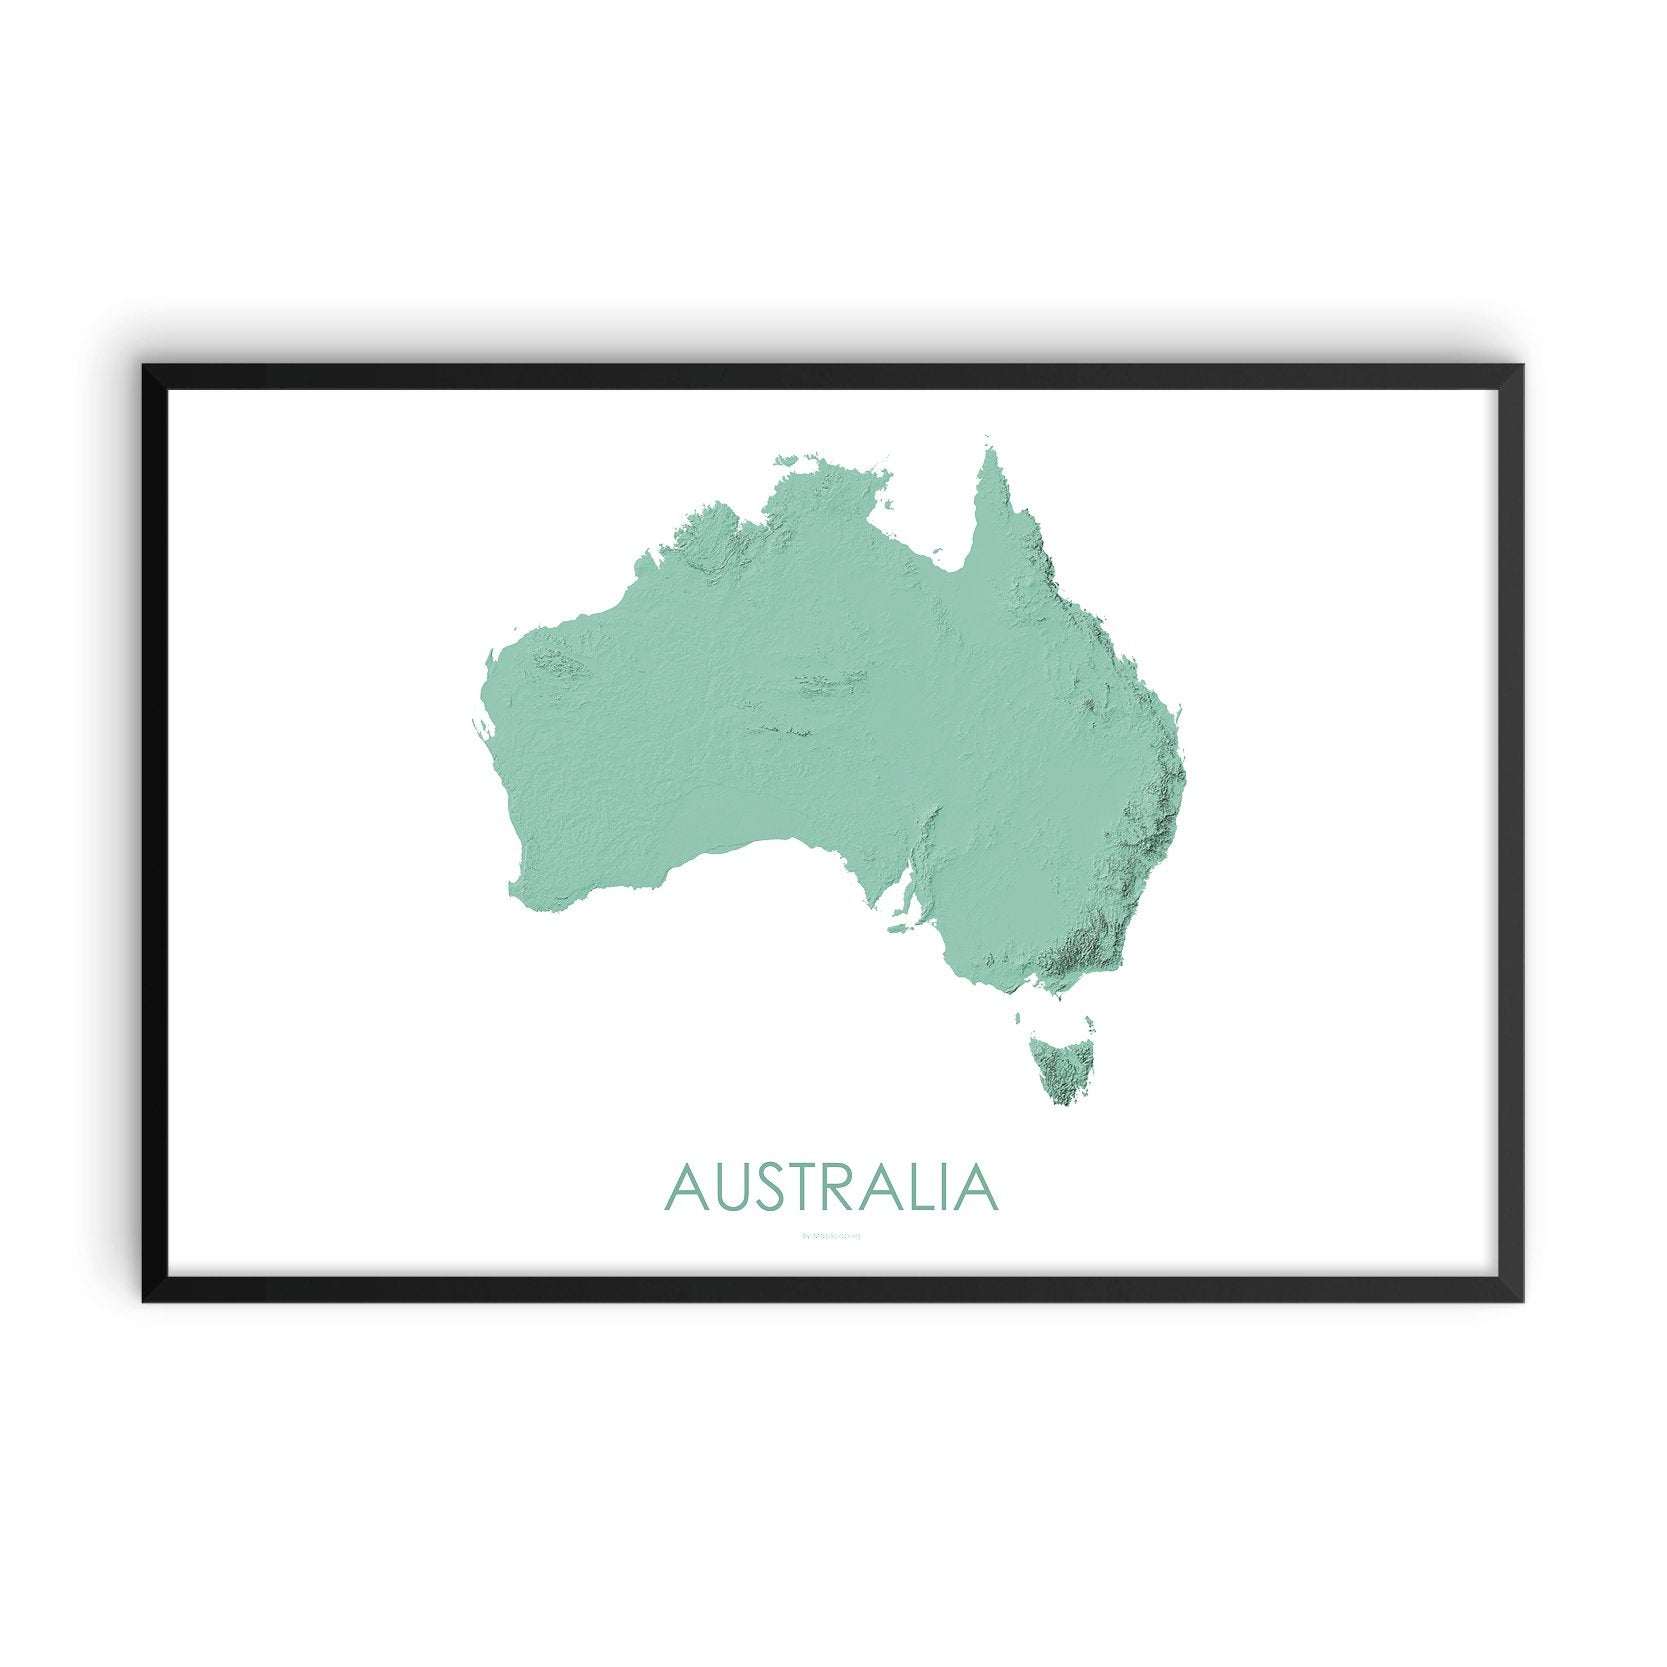 google maps australia, map of ohio, newcastle australia, snakes in australia, map of france, map of the united states, animals from australia, map of germany, port douglas australia, map of georgia, map of the world, deserts in australia, map of mexico, map of california, detailed map australia, dangerous animals in australia, map of south america, map australia major cities, townsville australia, katoomba australia, map of africa, map of europe, queensland australia, ayers rock australia, map of usa, map of italy, western australia, map of florida, bendigo australia, fremantle australia, houses in australia, christmas in australia, map of texas, map of canada, broome australia, map of north carolina, map of china, largest country in australia, shark bay australia, south australia, on picture of australia map